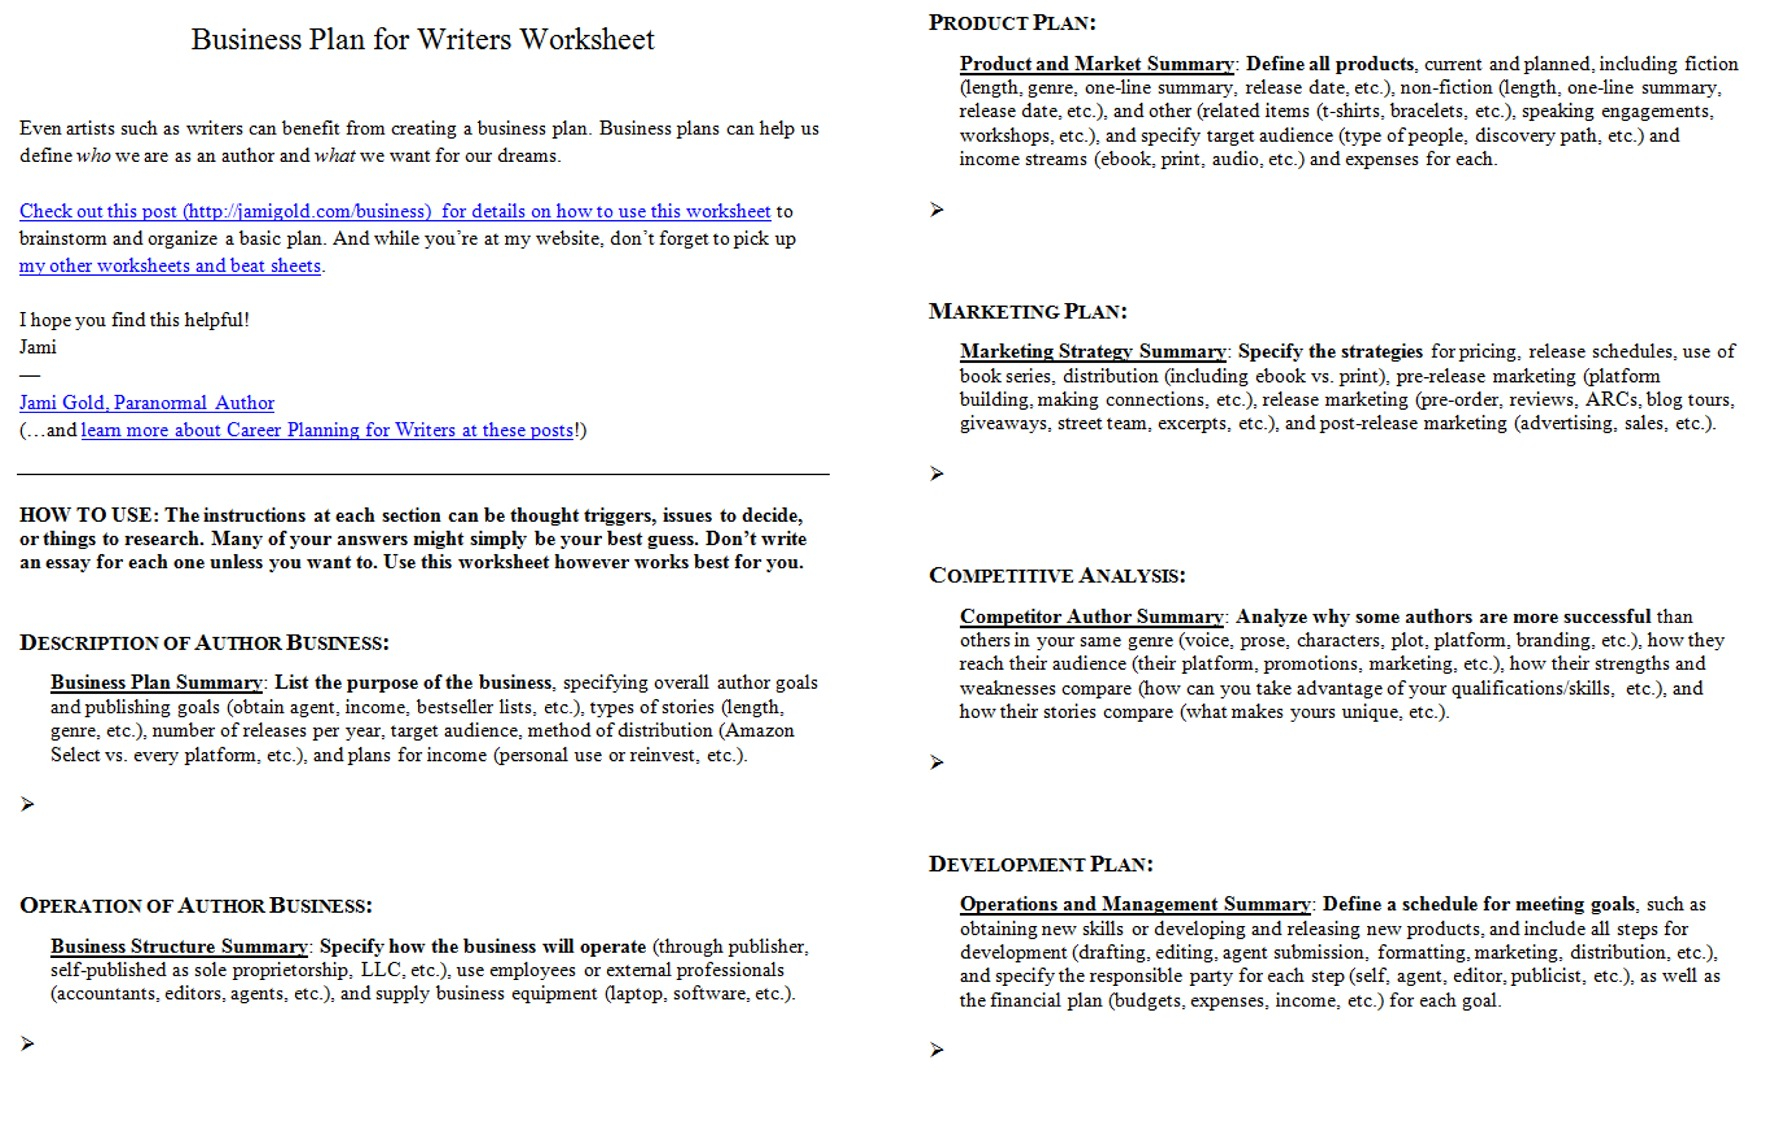 Aldiablosus  Personable Worksheets For Writers  Jami Gold Paranormal Author With Handsome Screen Shot Of Both Pages Of The Business Plan For Writers Worksheet With Comely Math Fun Worksheet Also Adding And Subtracting Integers Using A Number Line Worksheets In Addition Measures Worksheets And Limericks Worksheet As Well As Maths Worksheets Year  Additionally Th Grade Math Worksheets Online From Jamigoldcom With Aldiablosus  Handsome Worksheets For Writers  Jami Gold Paranormal Author With Comely Screen Shot Of Both Pages Of The Business Plan For Writers Worksheet And Personable Math Fun Worksheet Also Adding And Subtracting Integers Using A Number Line Worksheets In Addition Measures Worksheets From Jamigoldcom